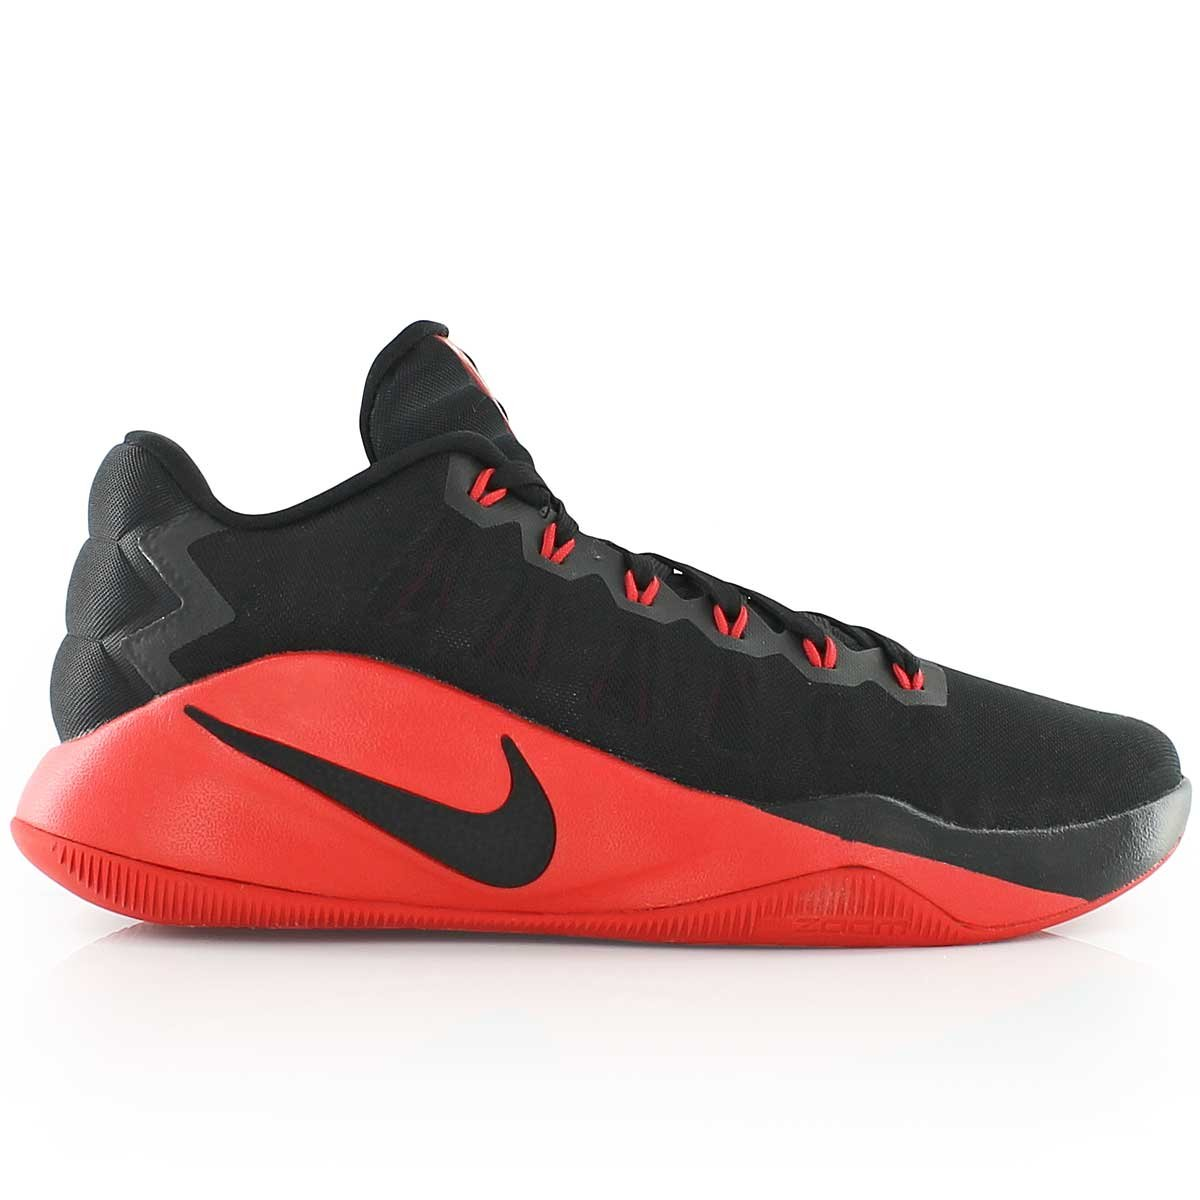 Nike Hyperdunk 2016 Low Mens Basketball Trainers